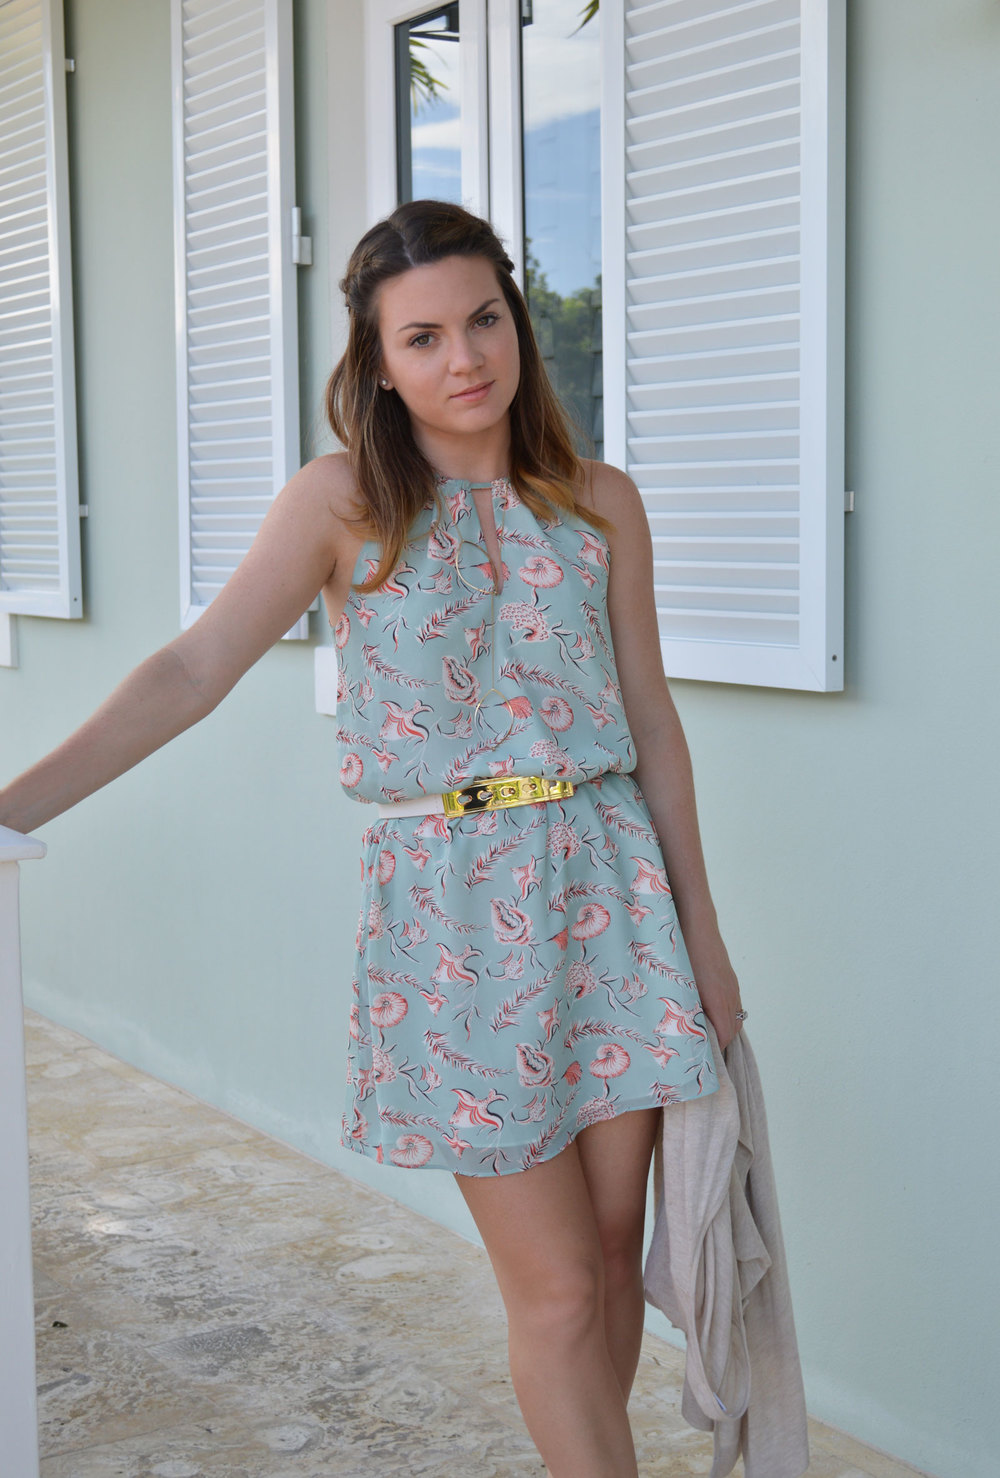 forever-21-dress-sea-print-teal-coral-bcbgeneration-gold-belt-wiw-zara-heels-nude-favorites-style-blogger-church-nassau-bahamas.jpeg